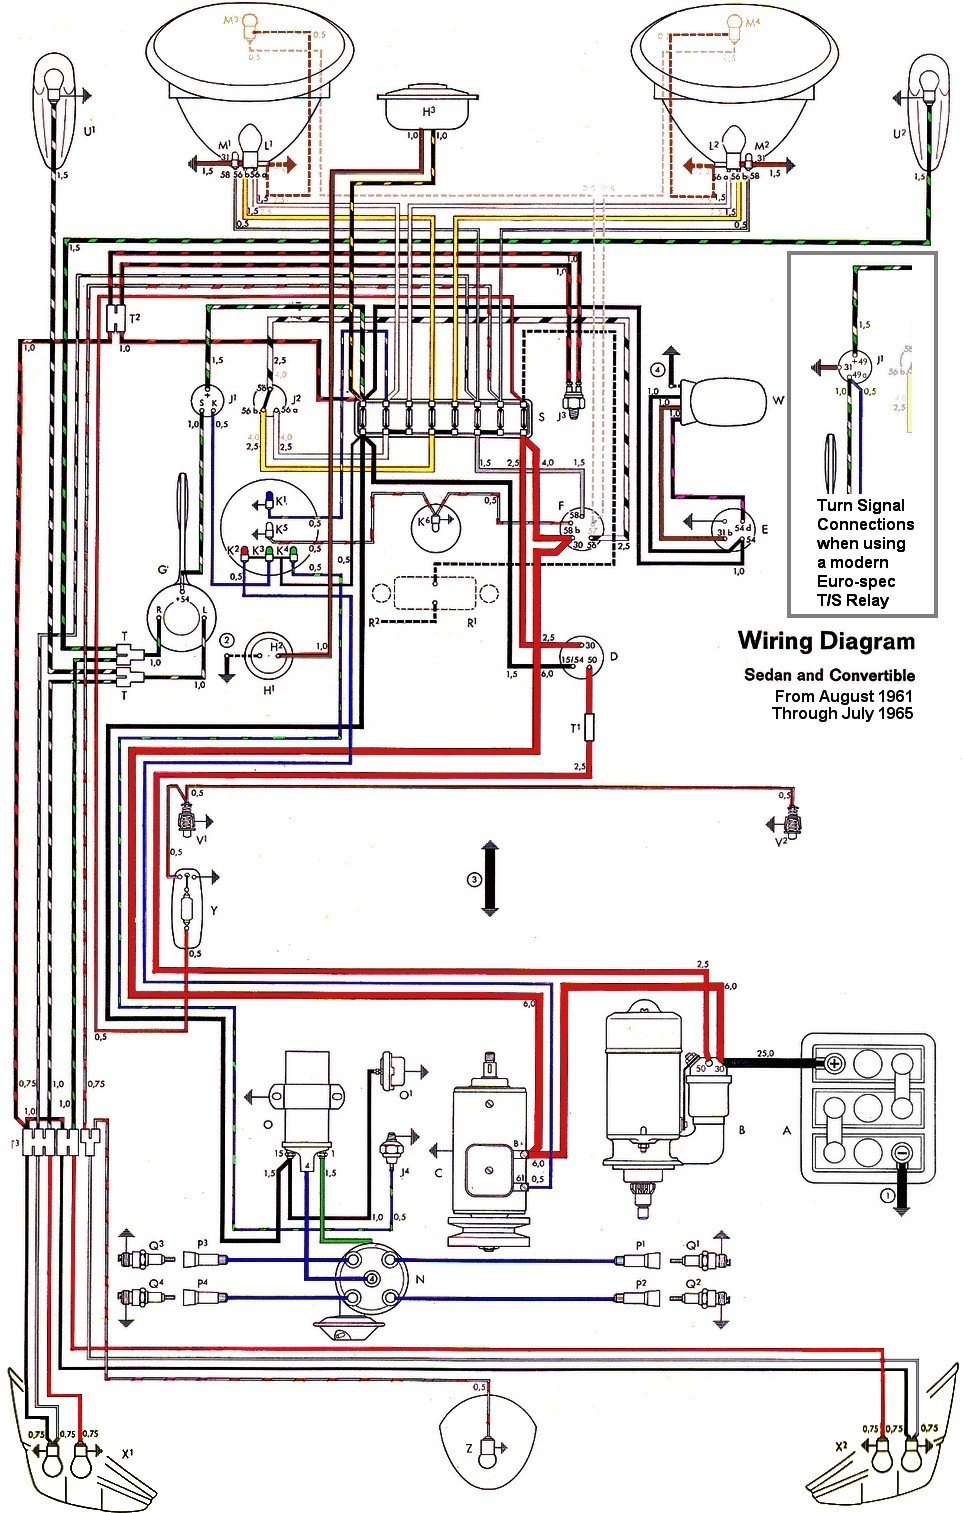 Volkswagen 1 8t Engine Wiring Diagram Real 2003 Vw Diagrams Detailed Schematics Rh Jppastryarts Com 18t Cooling System Passat